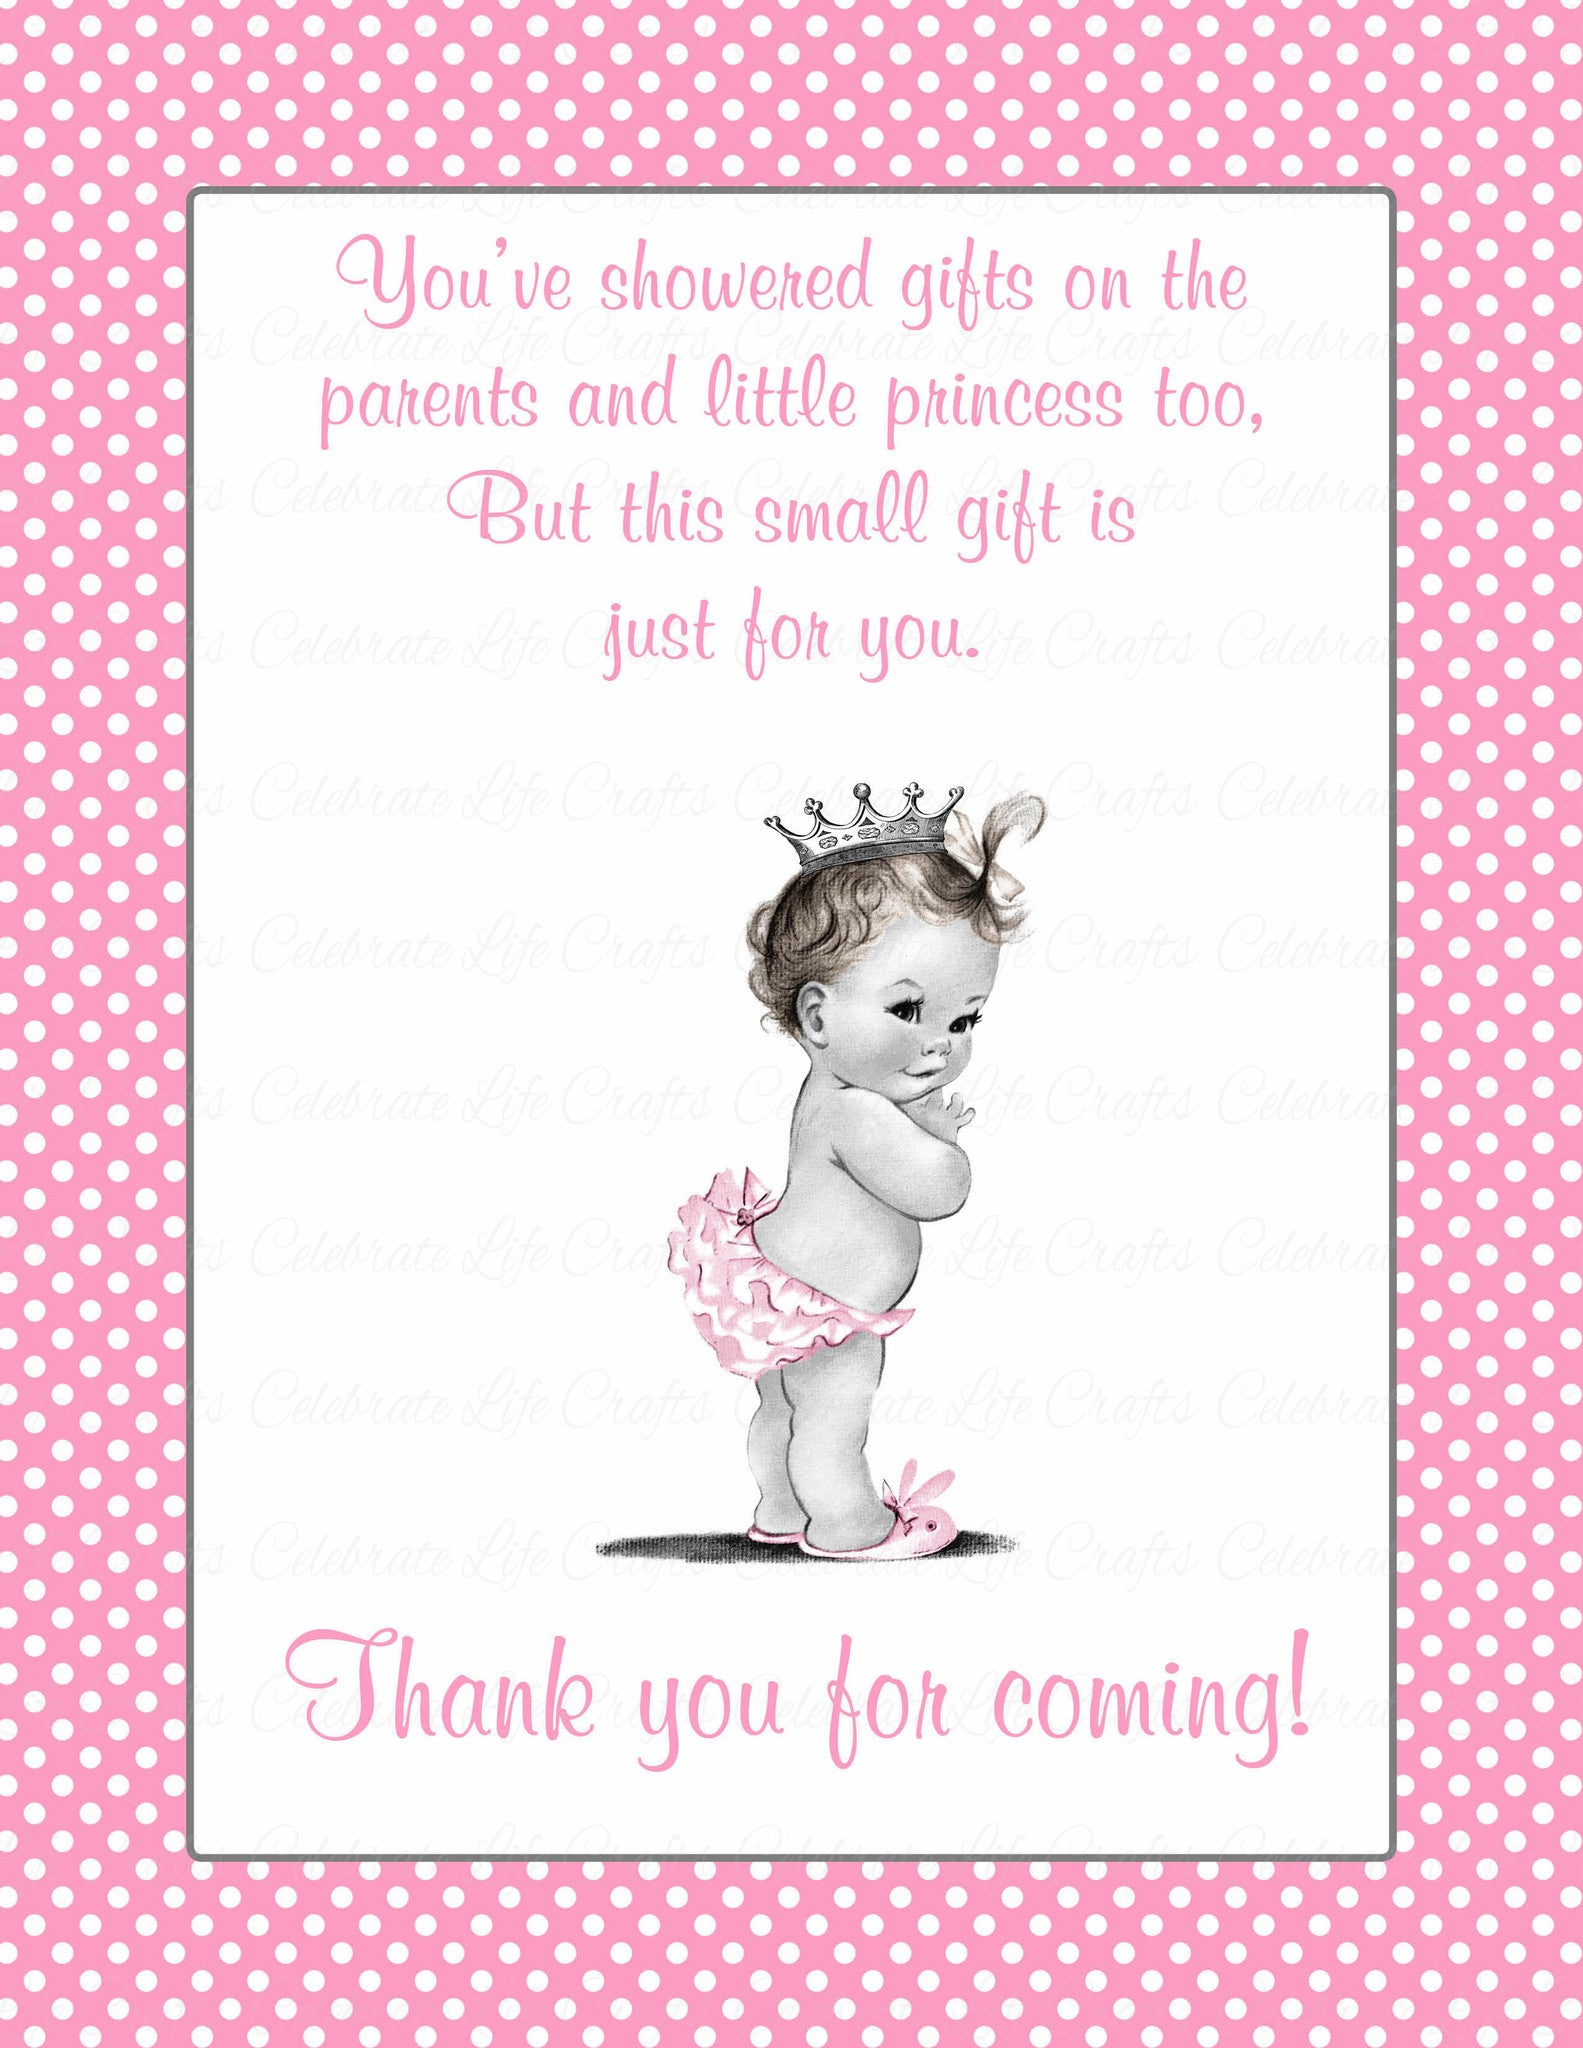 image relating to Printable Baby Shower named Thank Yourself Choose Signal - Printable Obtain - Purple Polka Little one Shower Decorations - B23001